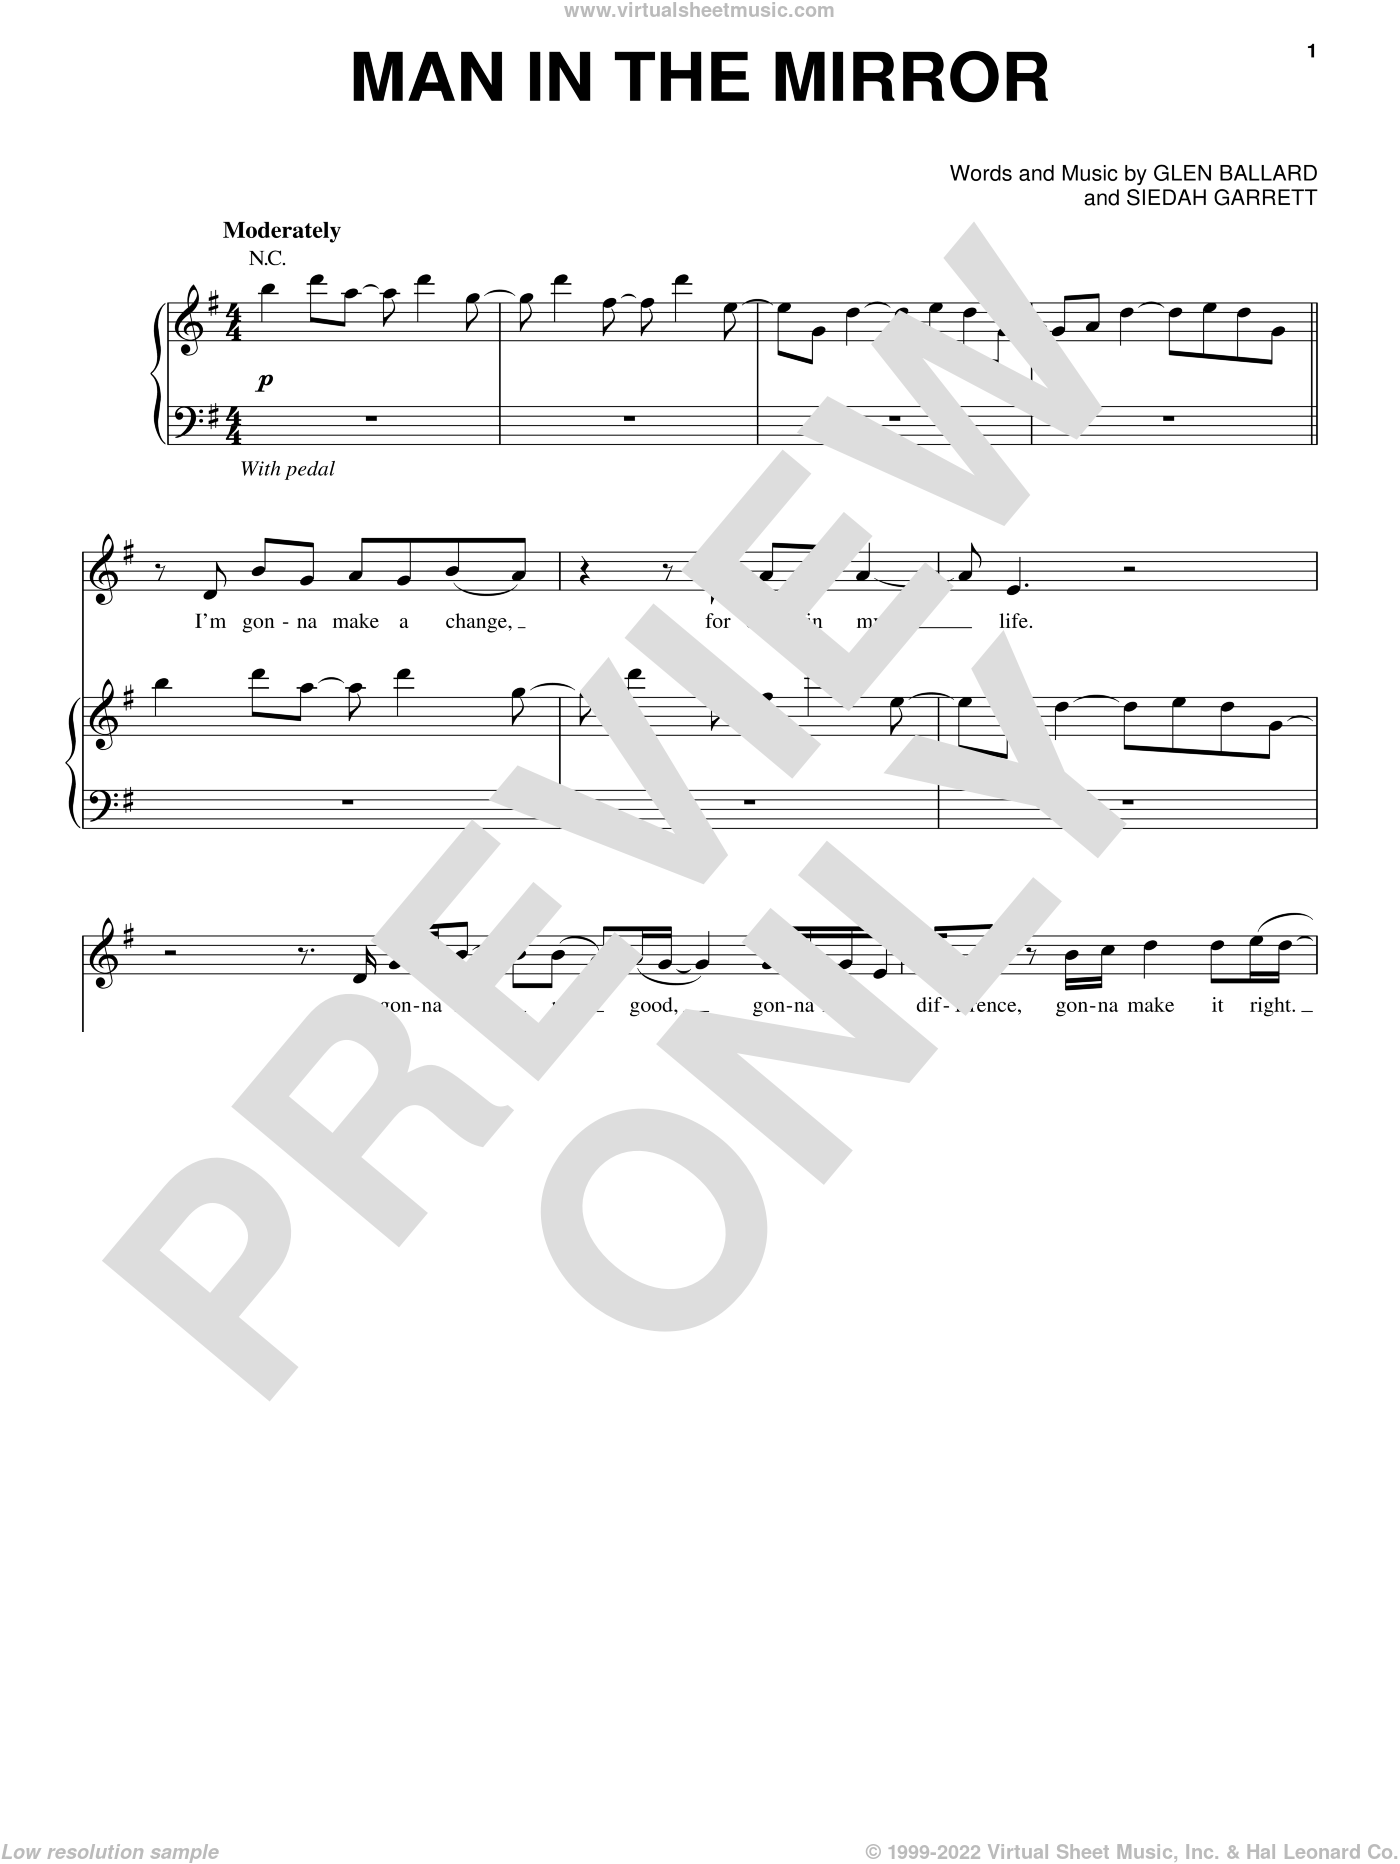 Man In The Mirror sheet music for voice, piano or guitar by Siedah Garrett, Michael Jackson and Glen Ballard. Score Image Preview.